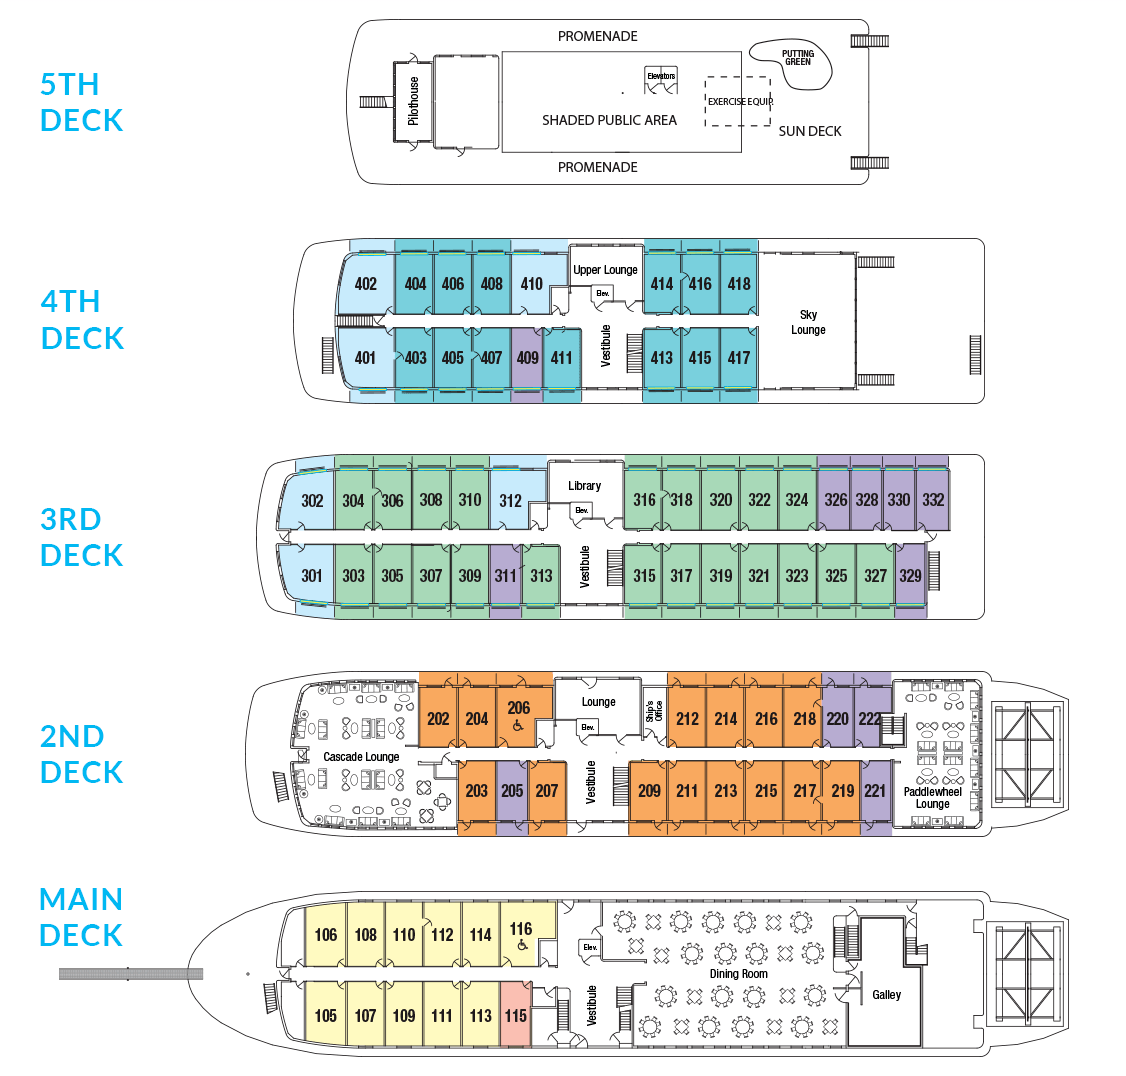 Cabin layout for American Pride